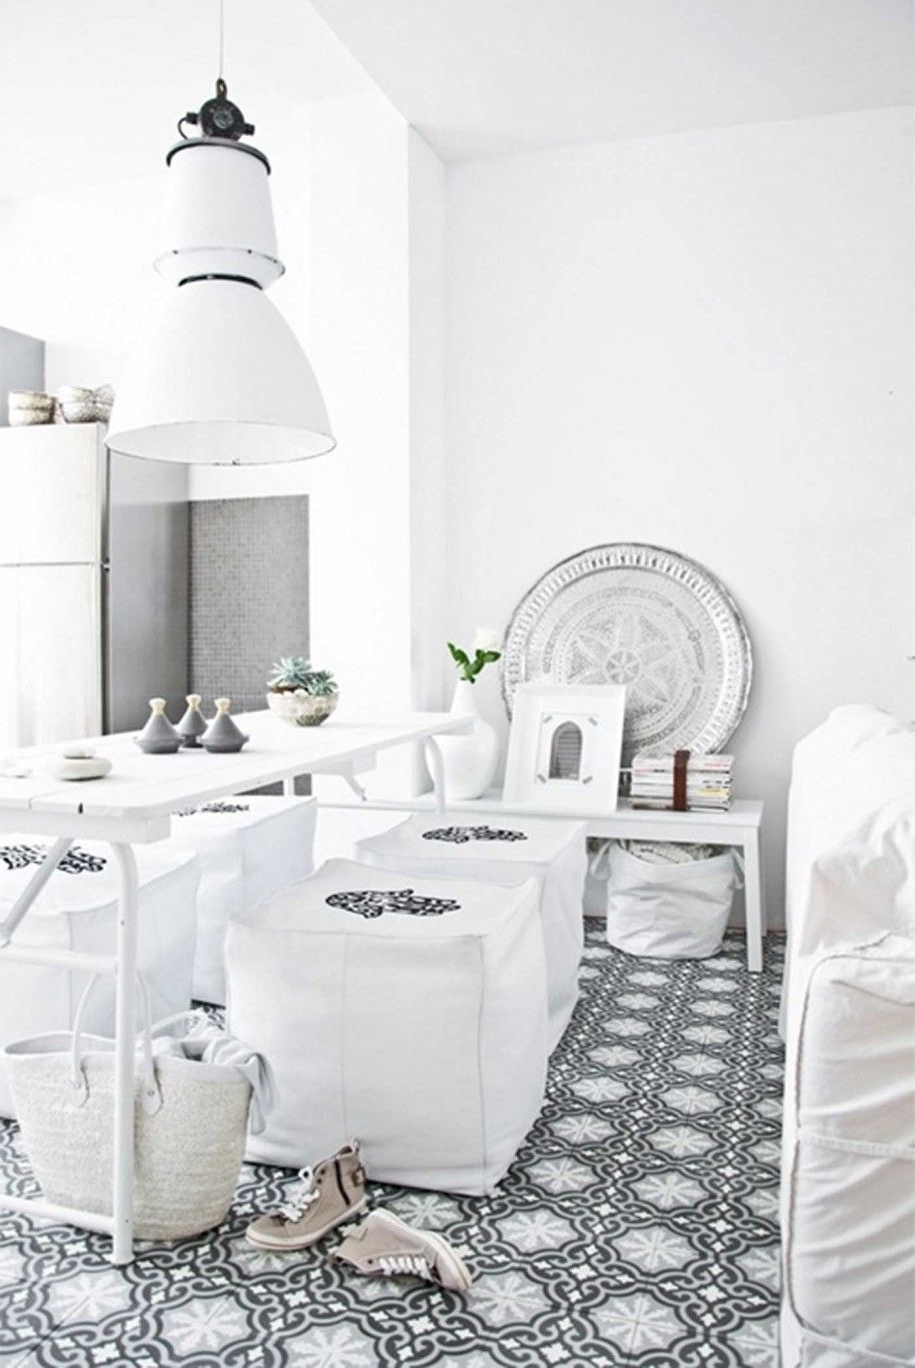 Shiny White Dining Tables With Regard To Current Exquisite Moroccan Style Dining Room Designs : Shiny Dining Room (View 21 of 25)